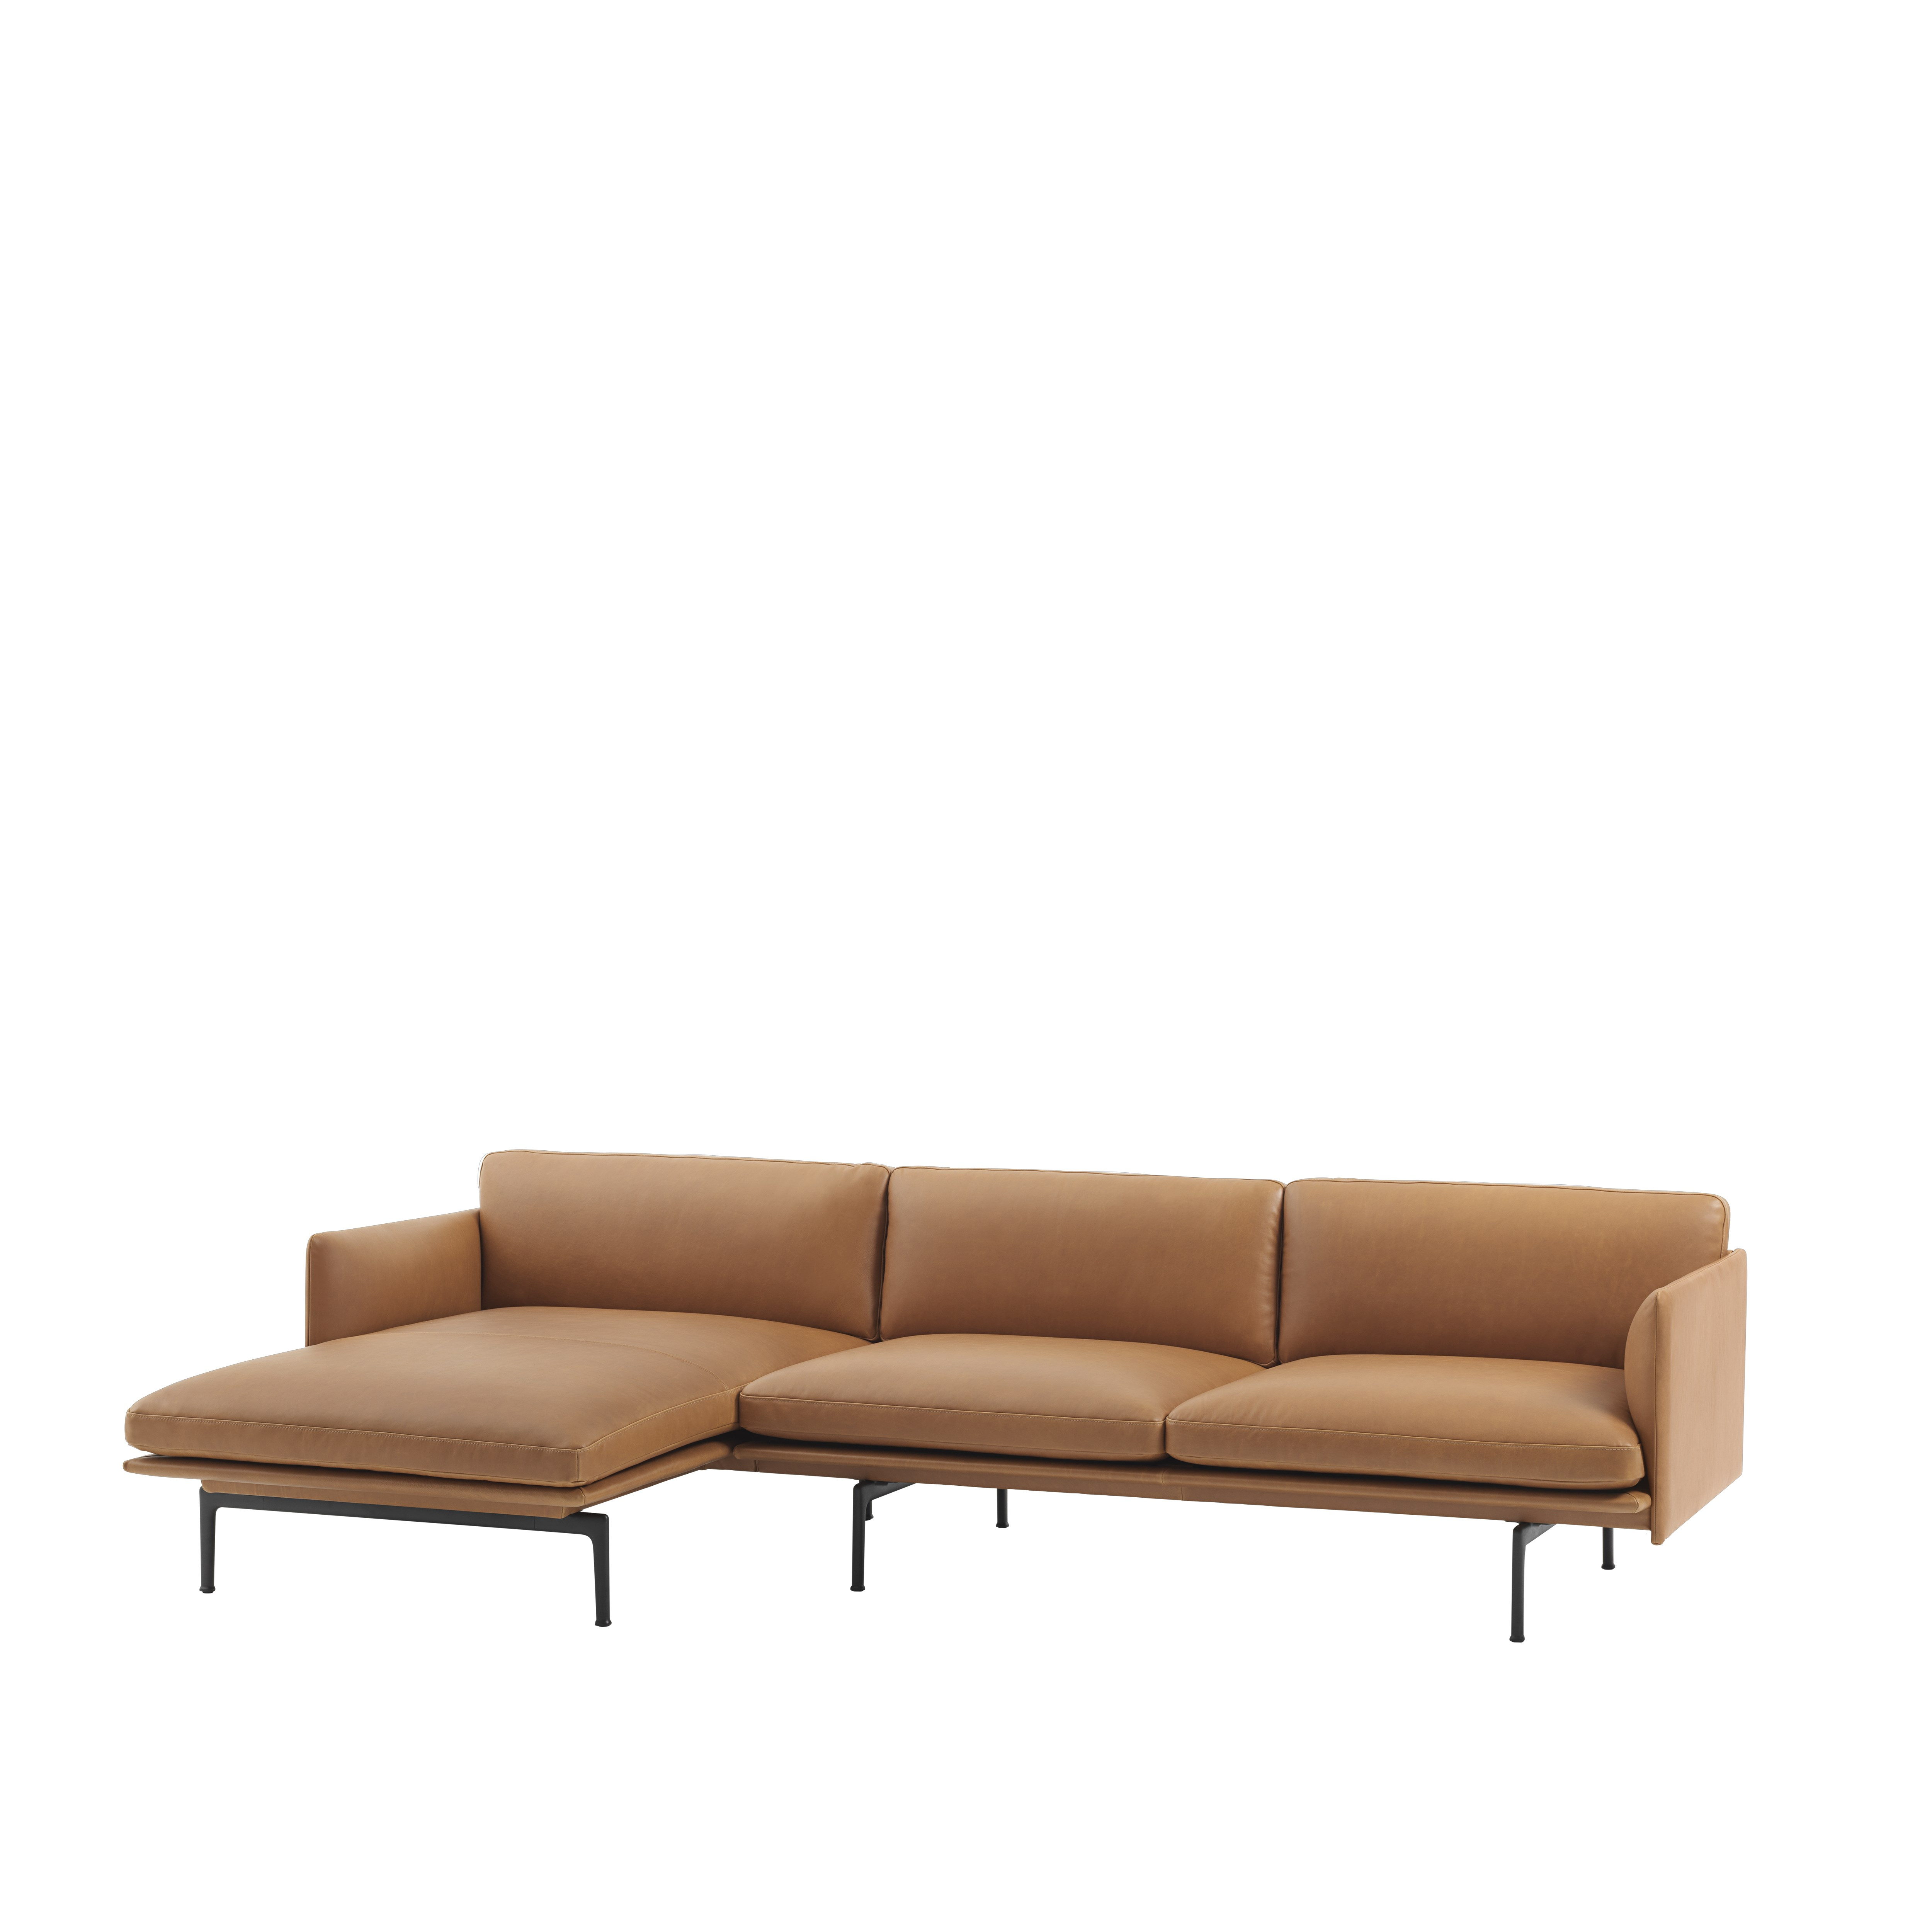 muuto canap outline sofa chaise longue anderssen voll. Black Bedroom Furniture Sets. Home Design Ideas